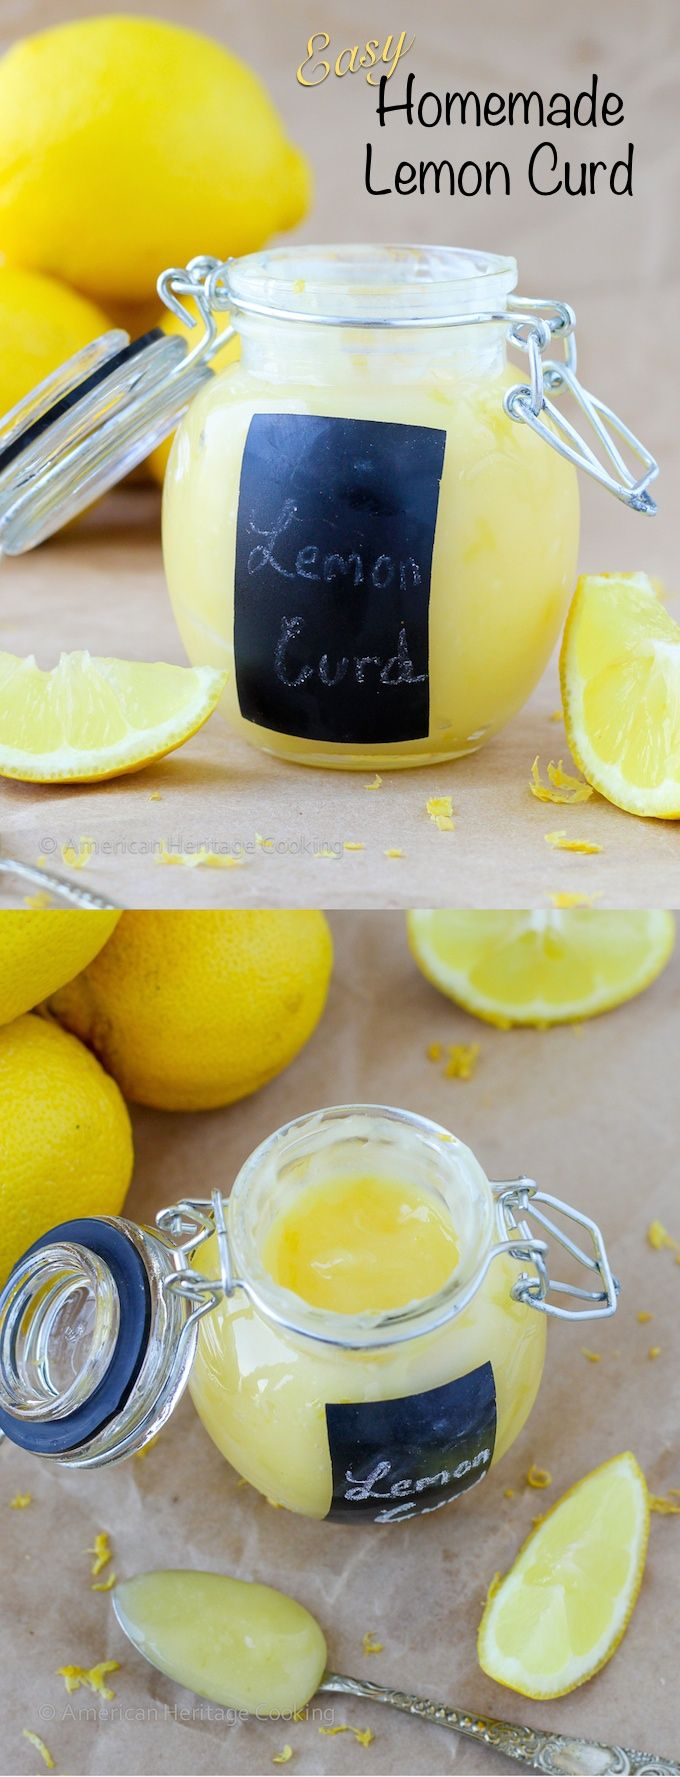 Easy Homemade Lemon Curd | this recipe uses the whole egg so no waste or leftovers! ~ American Heritage Cooking: